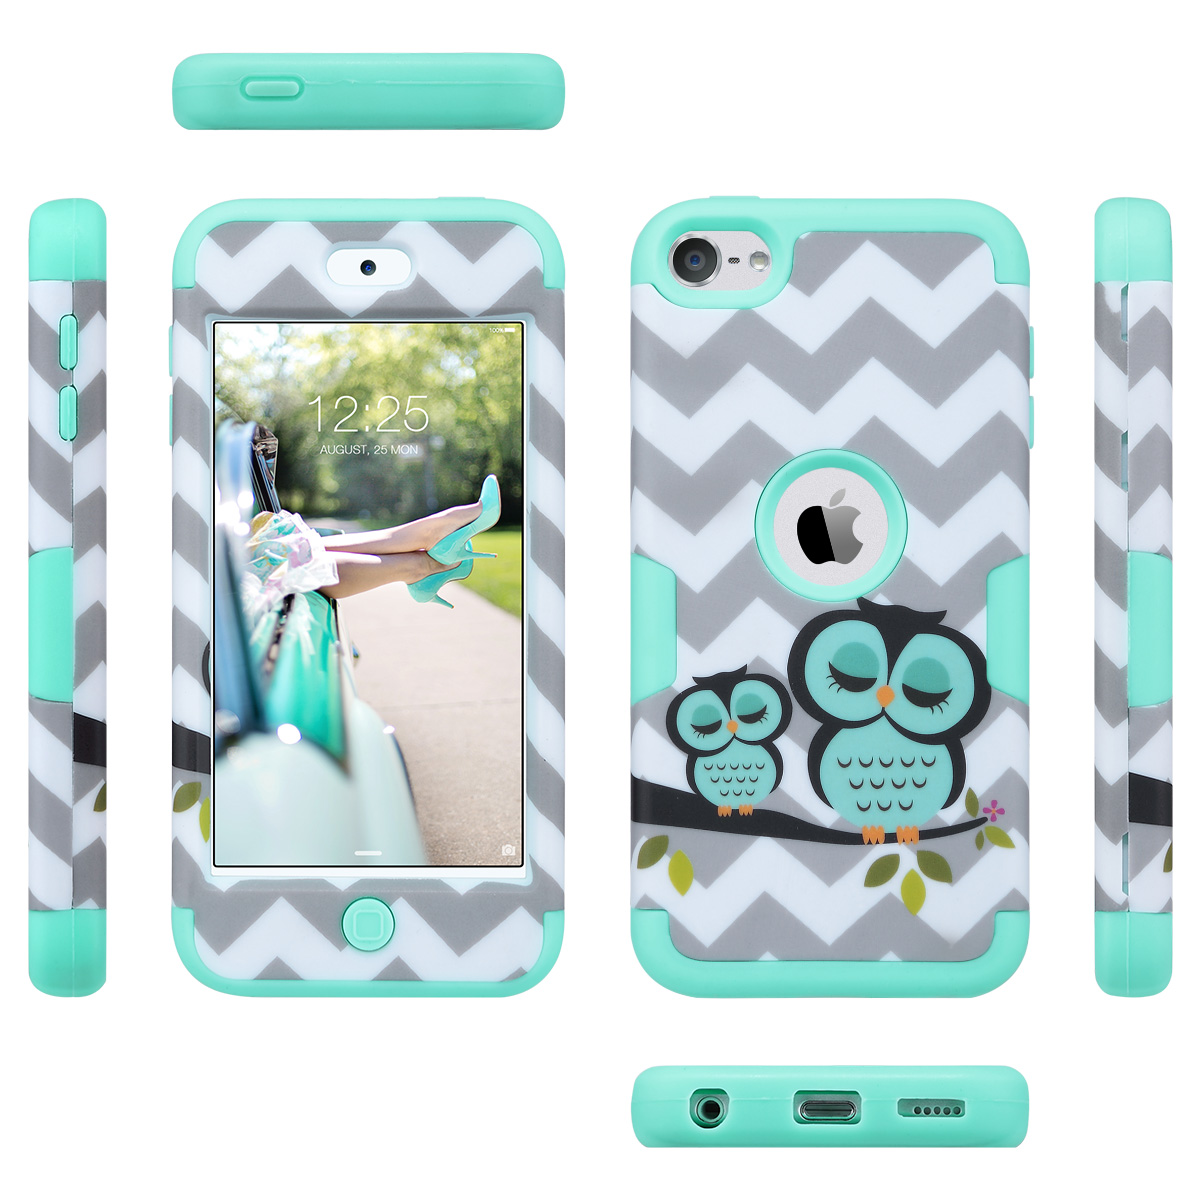 Hybrid-Hard-Protective-Silicon-TPU-Case-for-Apple-iPod-Touch-5-6th-Generation thumbnail 63